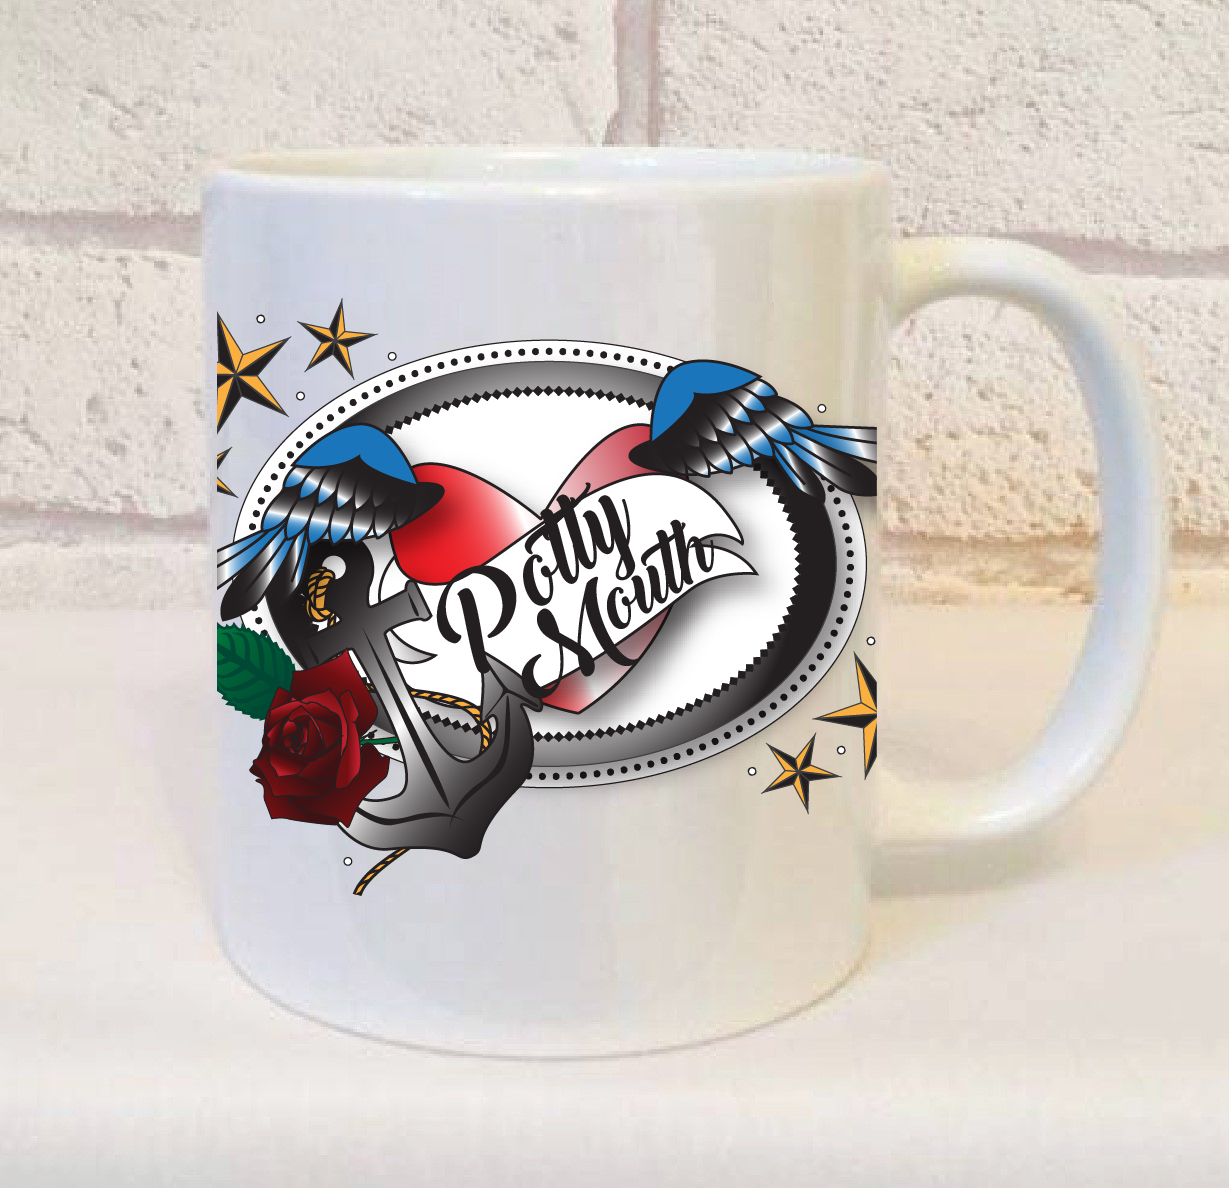 Potty Mouth Novelty Mug - Perfect Gift For someone who swears alot! b8f92f5d7